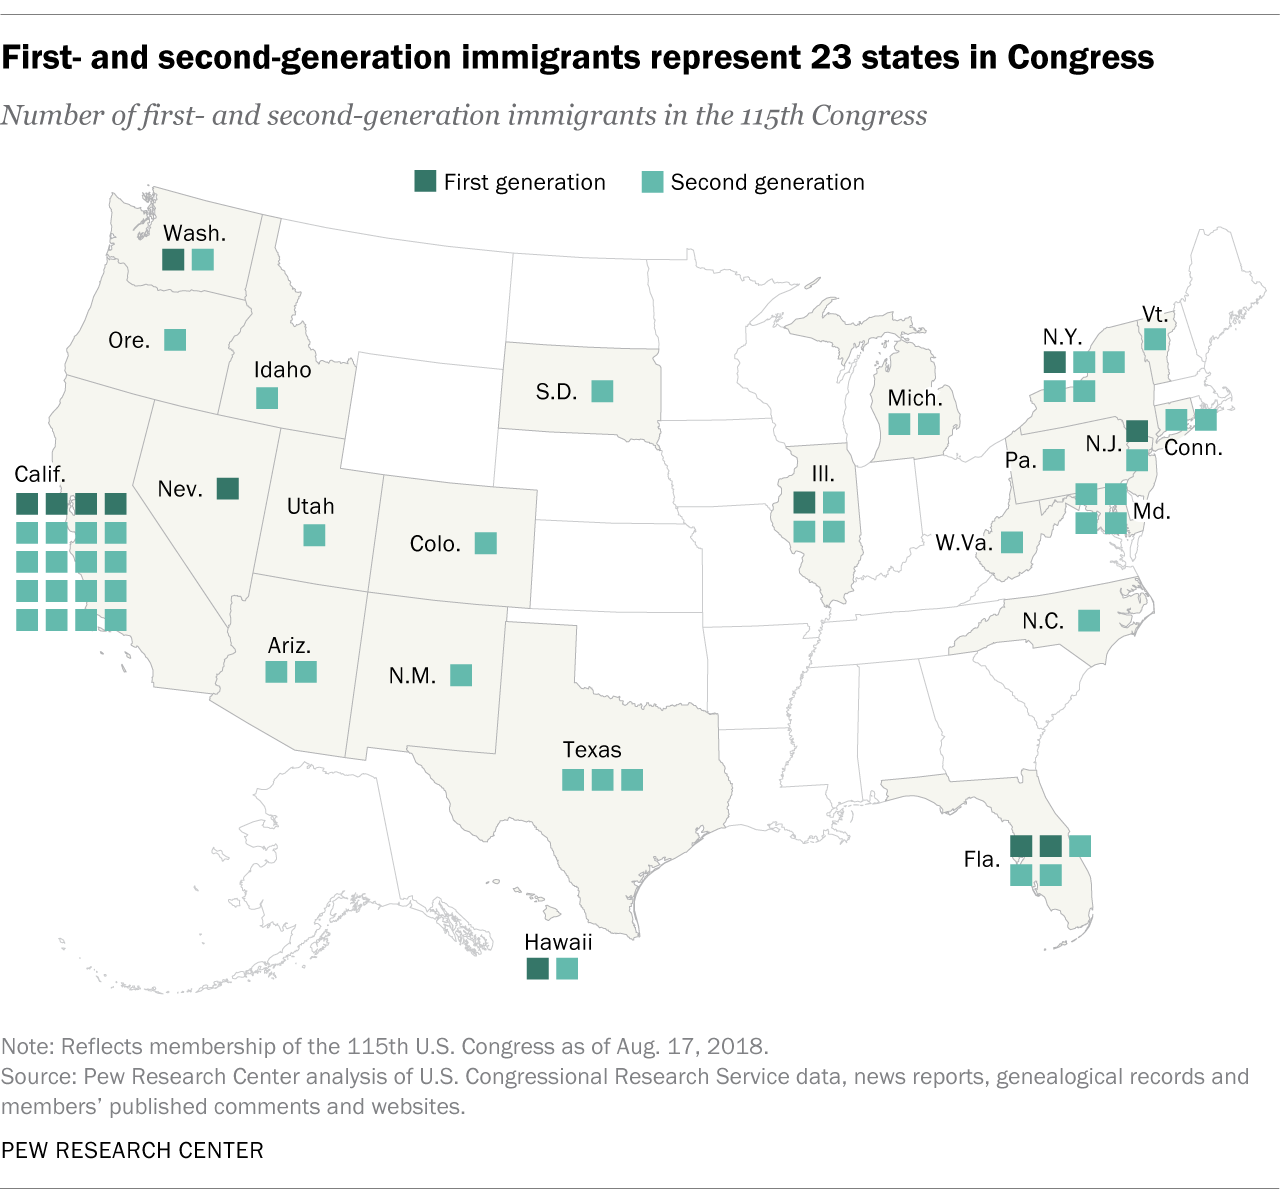 First- and second-generation immigrants represent 23 states in Congress